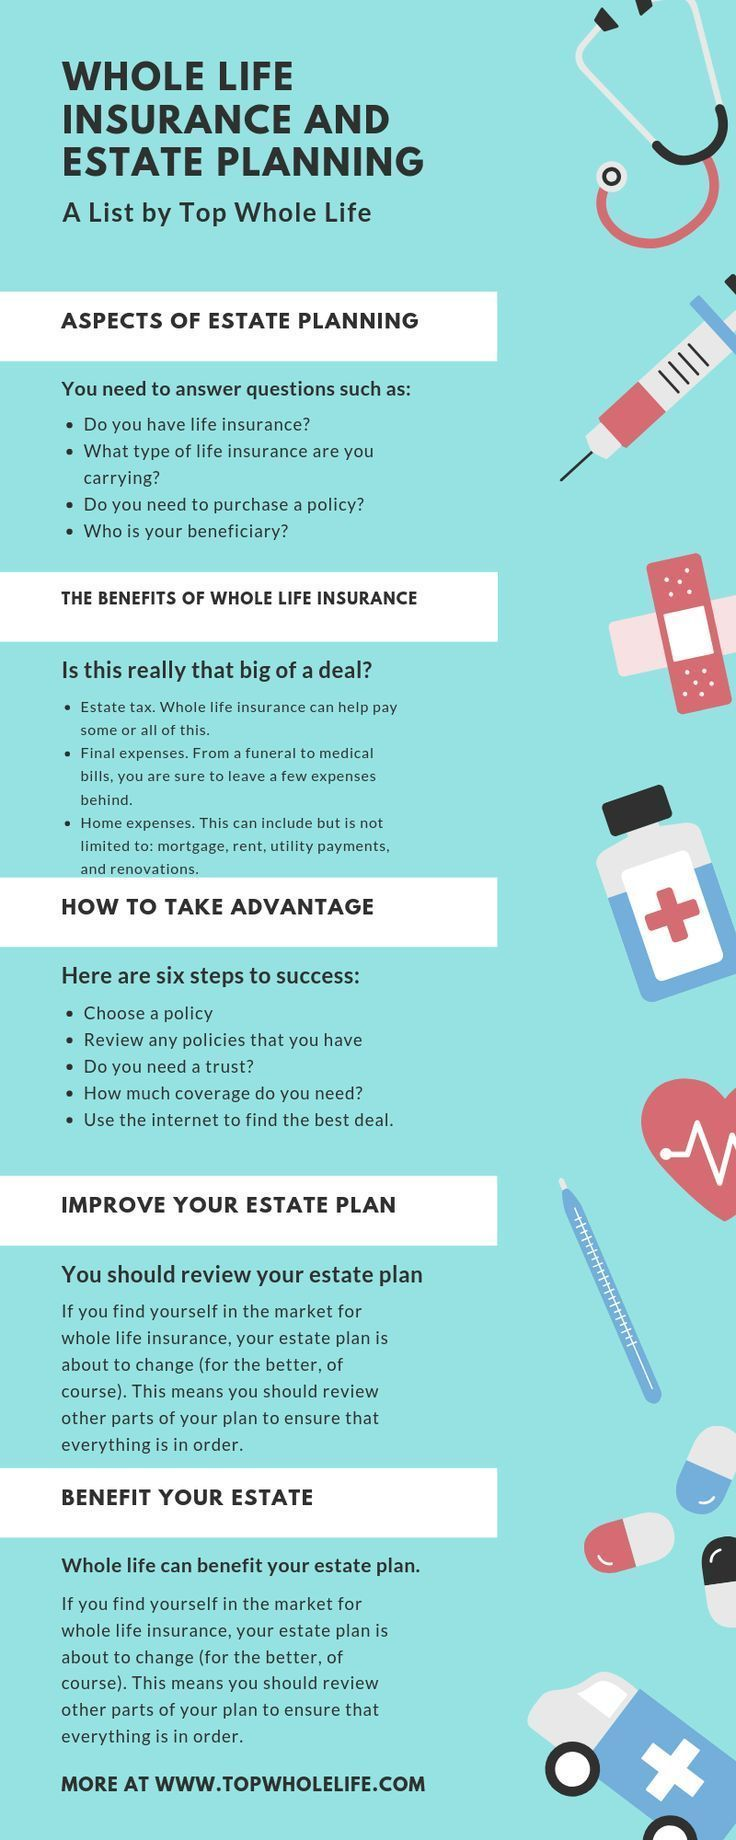 Whole Life Insurance Estate Planning Is Extremely Important Here Is The Our Best List To Help Conne Whole Life Insurance Estate Planning Life Insurance Premium